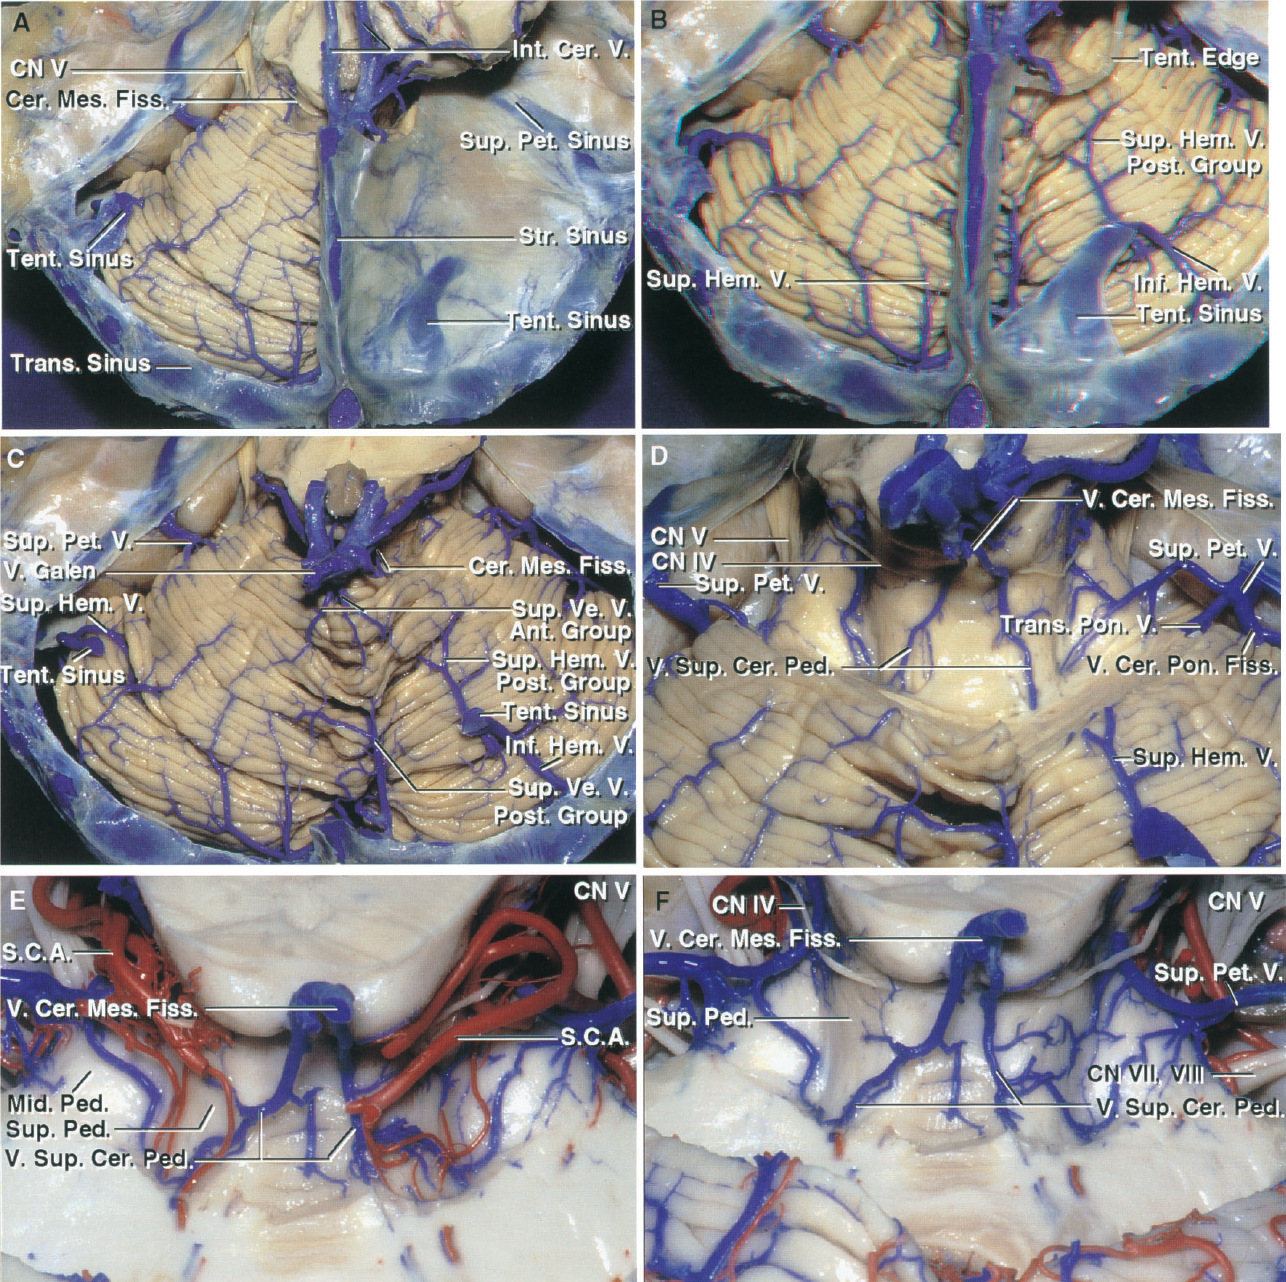 FIGURE 3.4. Tentorial surface and cerebellomesencephalic fissure. A, the left half of the tentorium has been removed while preserving a laterally placed tentorial sinus. A large sinus is seen through the right tentorial surface. B, the right half of the tentorium has been removed to expose a large inferior hemispheric vein from the suboccipital surface and a smaller superior hemispheric vein from the tentorial surface emptying into the large tentorial sinus. The superior hemispheric veins, which drain the tentorial surface, are divided into an anterior group, which empties into the Galenic system, and a posterior group, like the vein shown, which empties into the tentorial sinuses. Smaller veins from both the left tentorial and suboccipital surfaces join the laterally placed tentorial sinus near the junction of the left transverse and superior petrosal sinuses. C, the straight and tentorial sinuses have been removed. The anterior group drains toward the cerebellomesencephalic fissure and the vein of Galen, and the posterior group passes backward to empty into the tentorial sinuses. D, the posterior lip of the cerebellomesencephalic fissure has been removed to expose the veins of the superior cerebellar peduncle, which ascend to unite and form the vein of the cerebellomesencephalic fissure that empties into the vein of Galen. A transverse pontine vein and the vein of the cerebellopontine fissure join to form a superior petrosal vein that empties into the superior petrosal sinus. E–F, cerebellomesencephalic fissure from another hemisphere. E, the posterior lip of the cerebellomesencephalic fissure has been removed to expose the tributaries of the vein of the cerebellomesencephalic fissure and the branches of the SCA. The paired veins of the superior cerebellar peduncle unite to form the vein of the cerebellomesencephalic fissure that empties into the vein of Galen. F, the branches of the SCA within the cerebellomesencephalic fissure have been removed. The paired veins of the superior cerebellar peduncle ascend on the superior cerebellar peduncles and join to form the vein of the cerebellomesencephalic fissure. The veins on the surface of the middle cerebellar peduncle course laterally to join the veins emptying into the superior petrosal sinus. A., artery; Ant., anterior; Cer., cerebral; Cer. Mes., cerebellomesencephalic; CN., cranial nerve; Fiss., fissure; Hem., hemispheric; Inf., inferior; Int., internal; Mid., middle; N., nerve; Ped., peduncle; Post., posterior; Str., straight; Sup., superior; Tent., tentorial; Trans., transverse; V., vein; Ve., vermian.